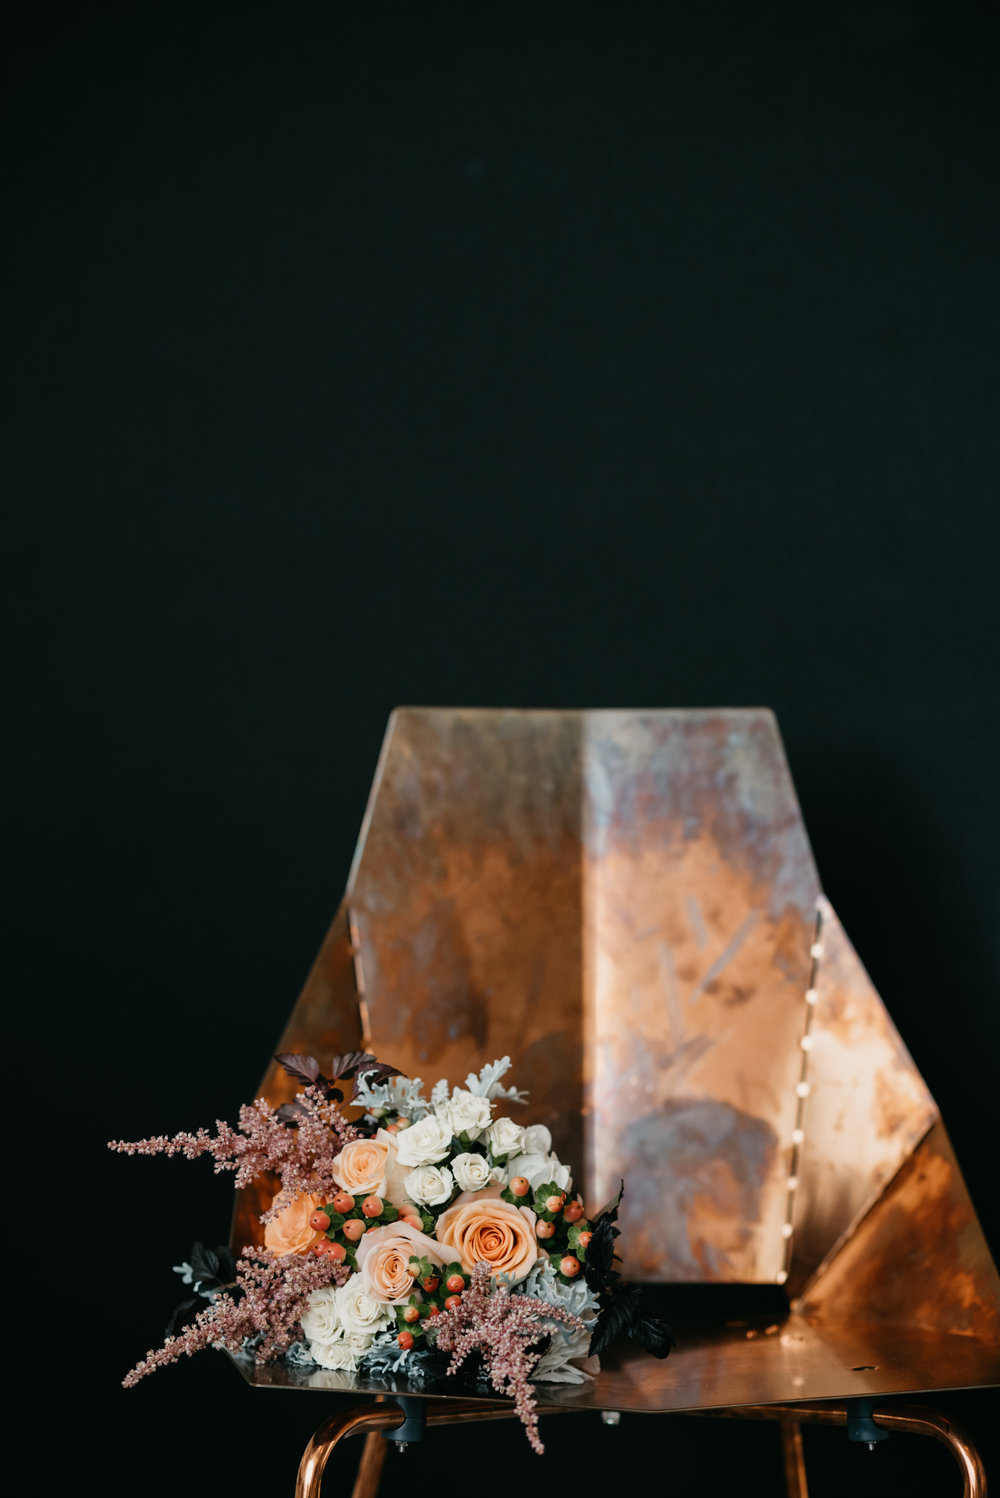 Mpls weddng photography-131.jpg